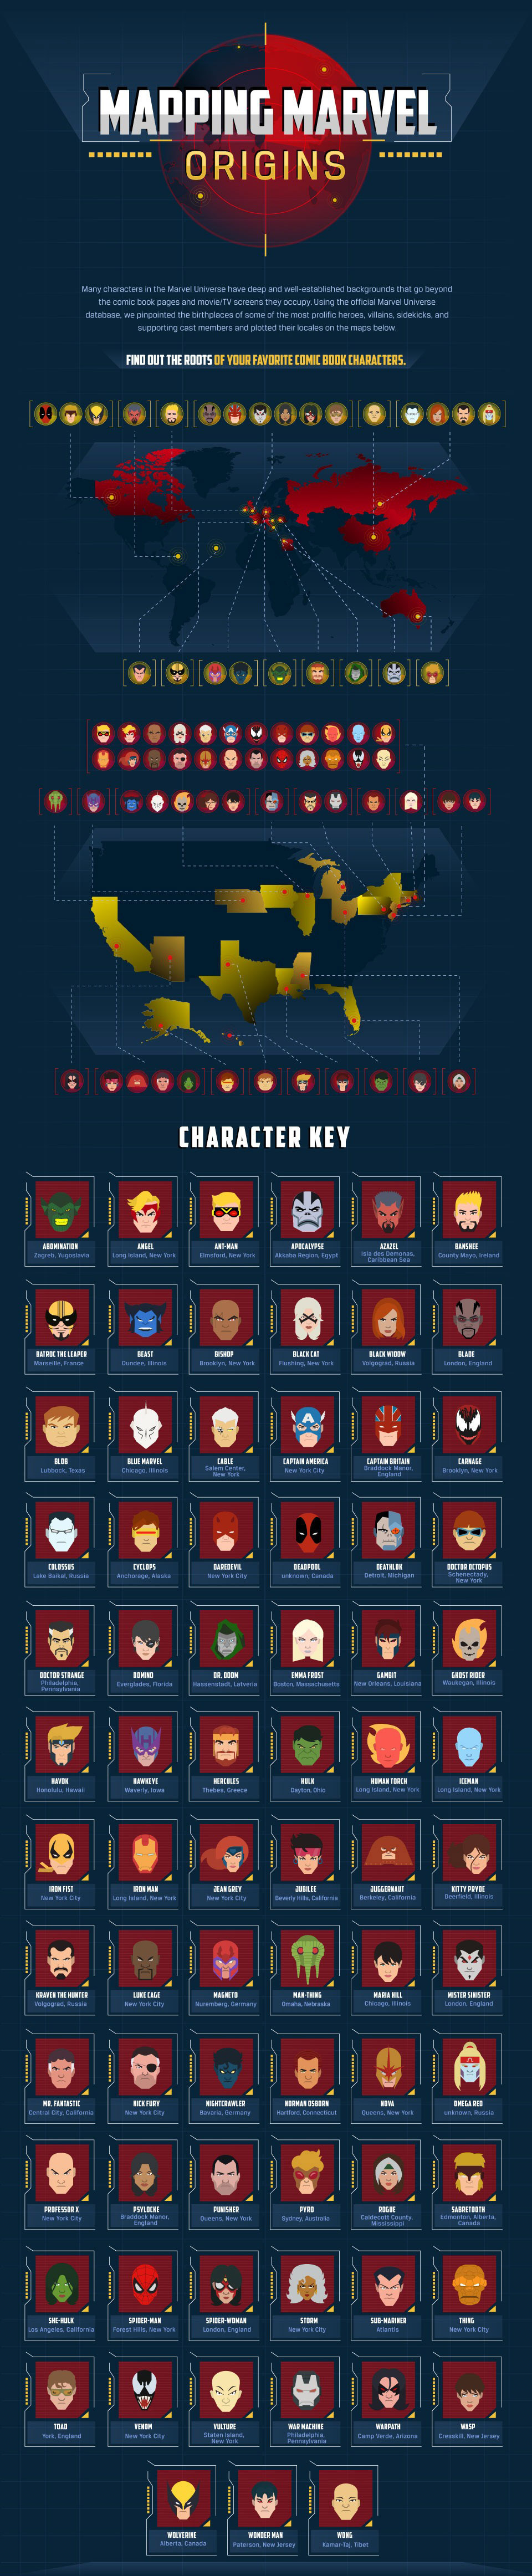 marvel character map